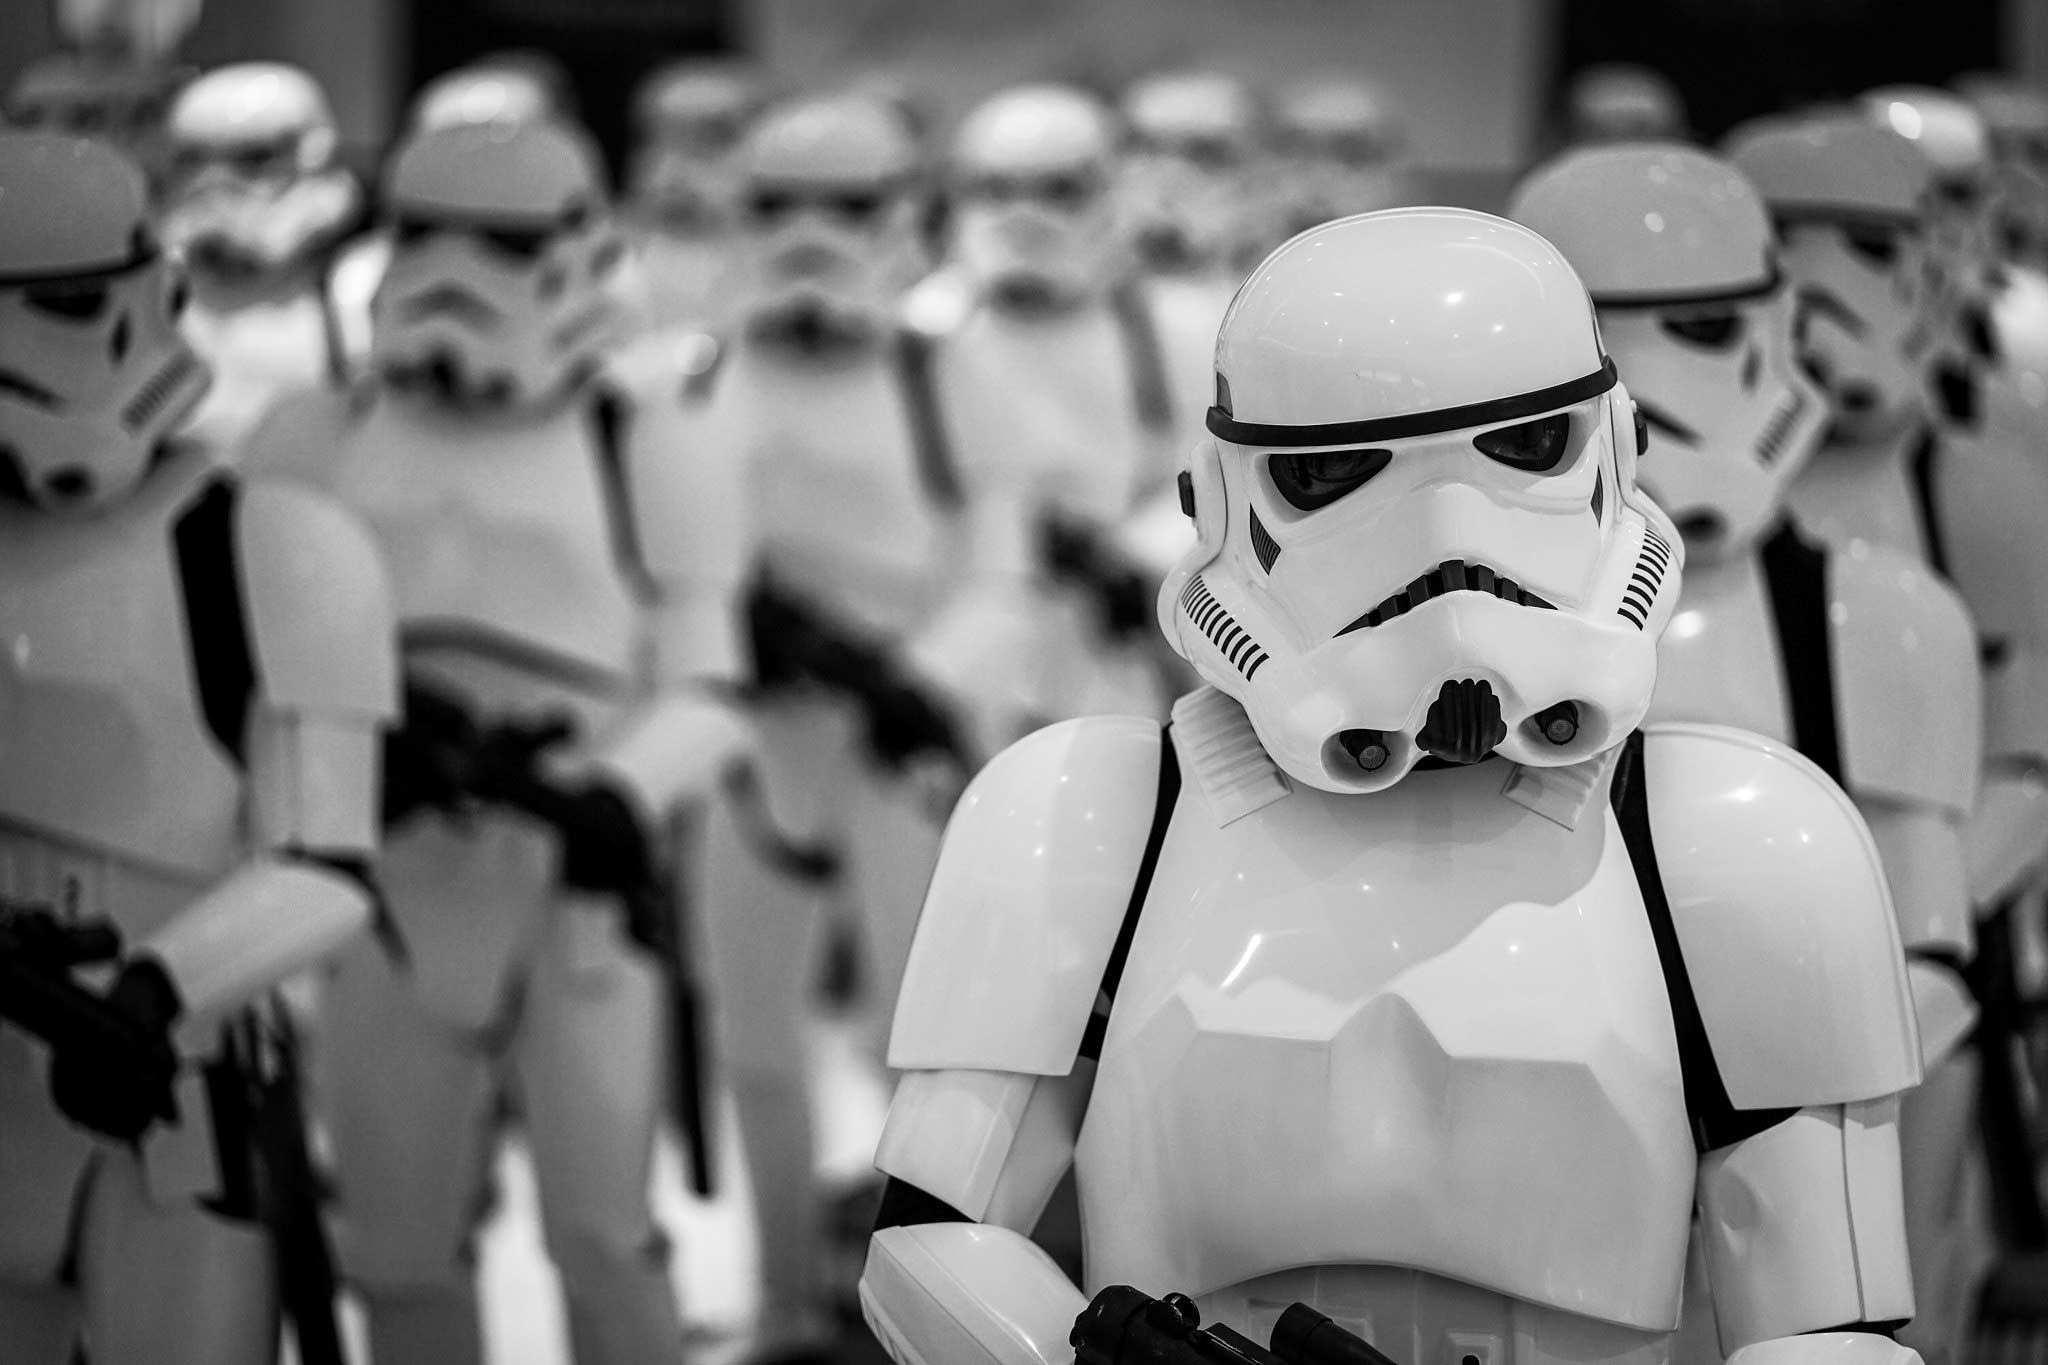 army of stormtroopers lined up